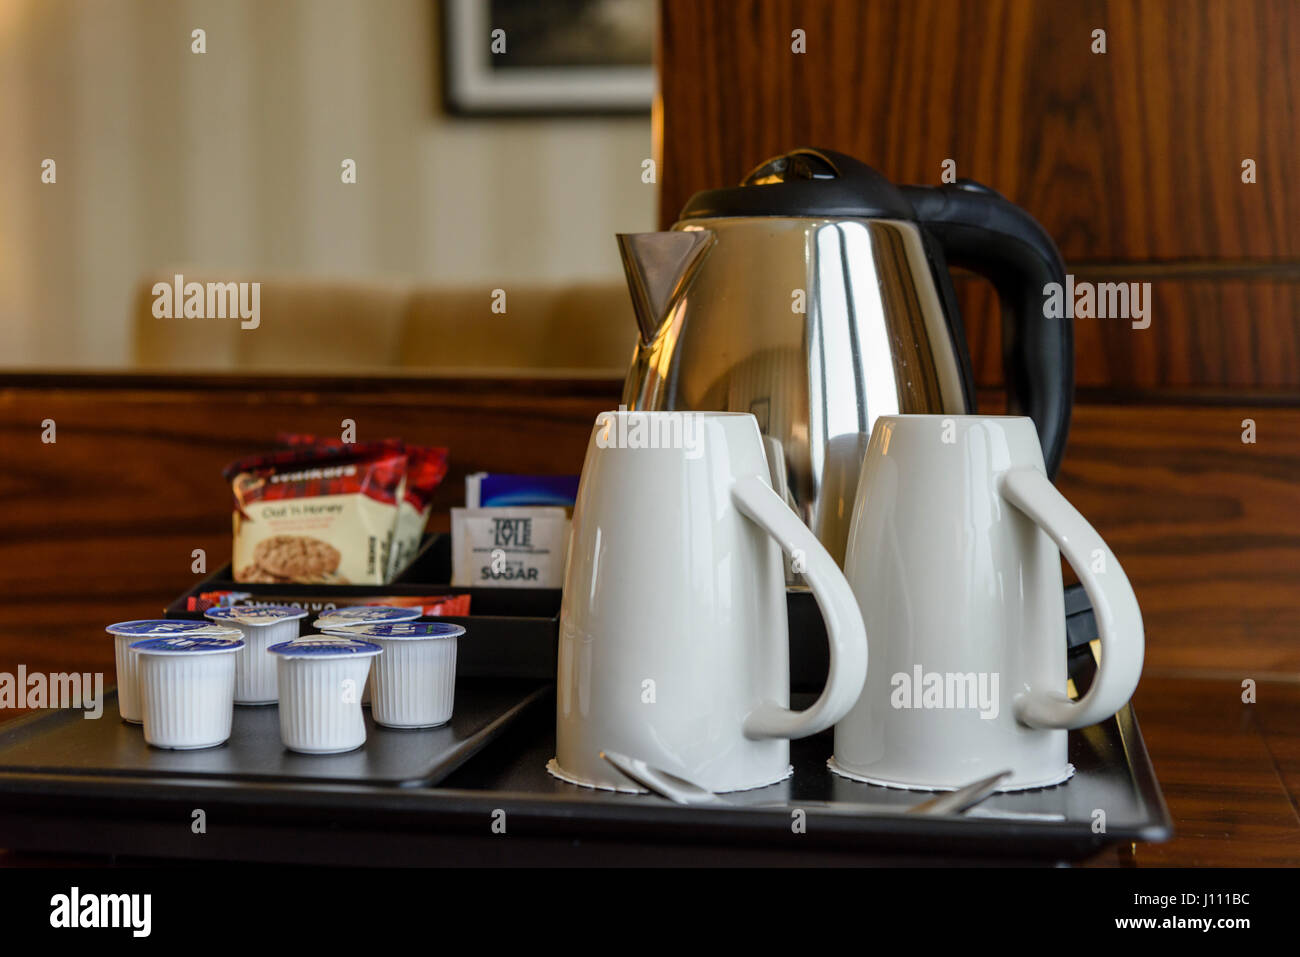 Tea and coffee making facilities in a hotel room. - Stock Image